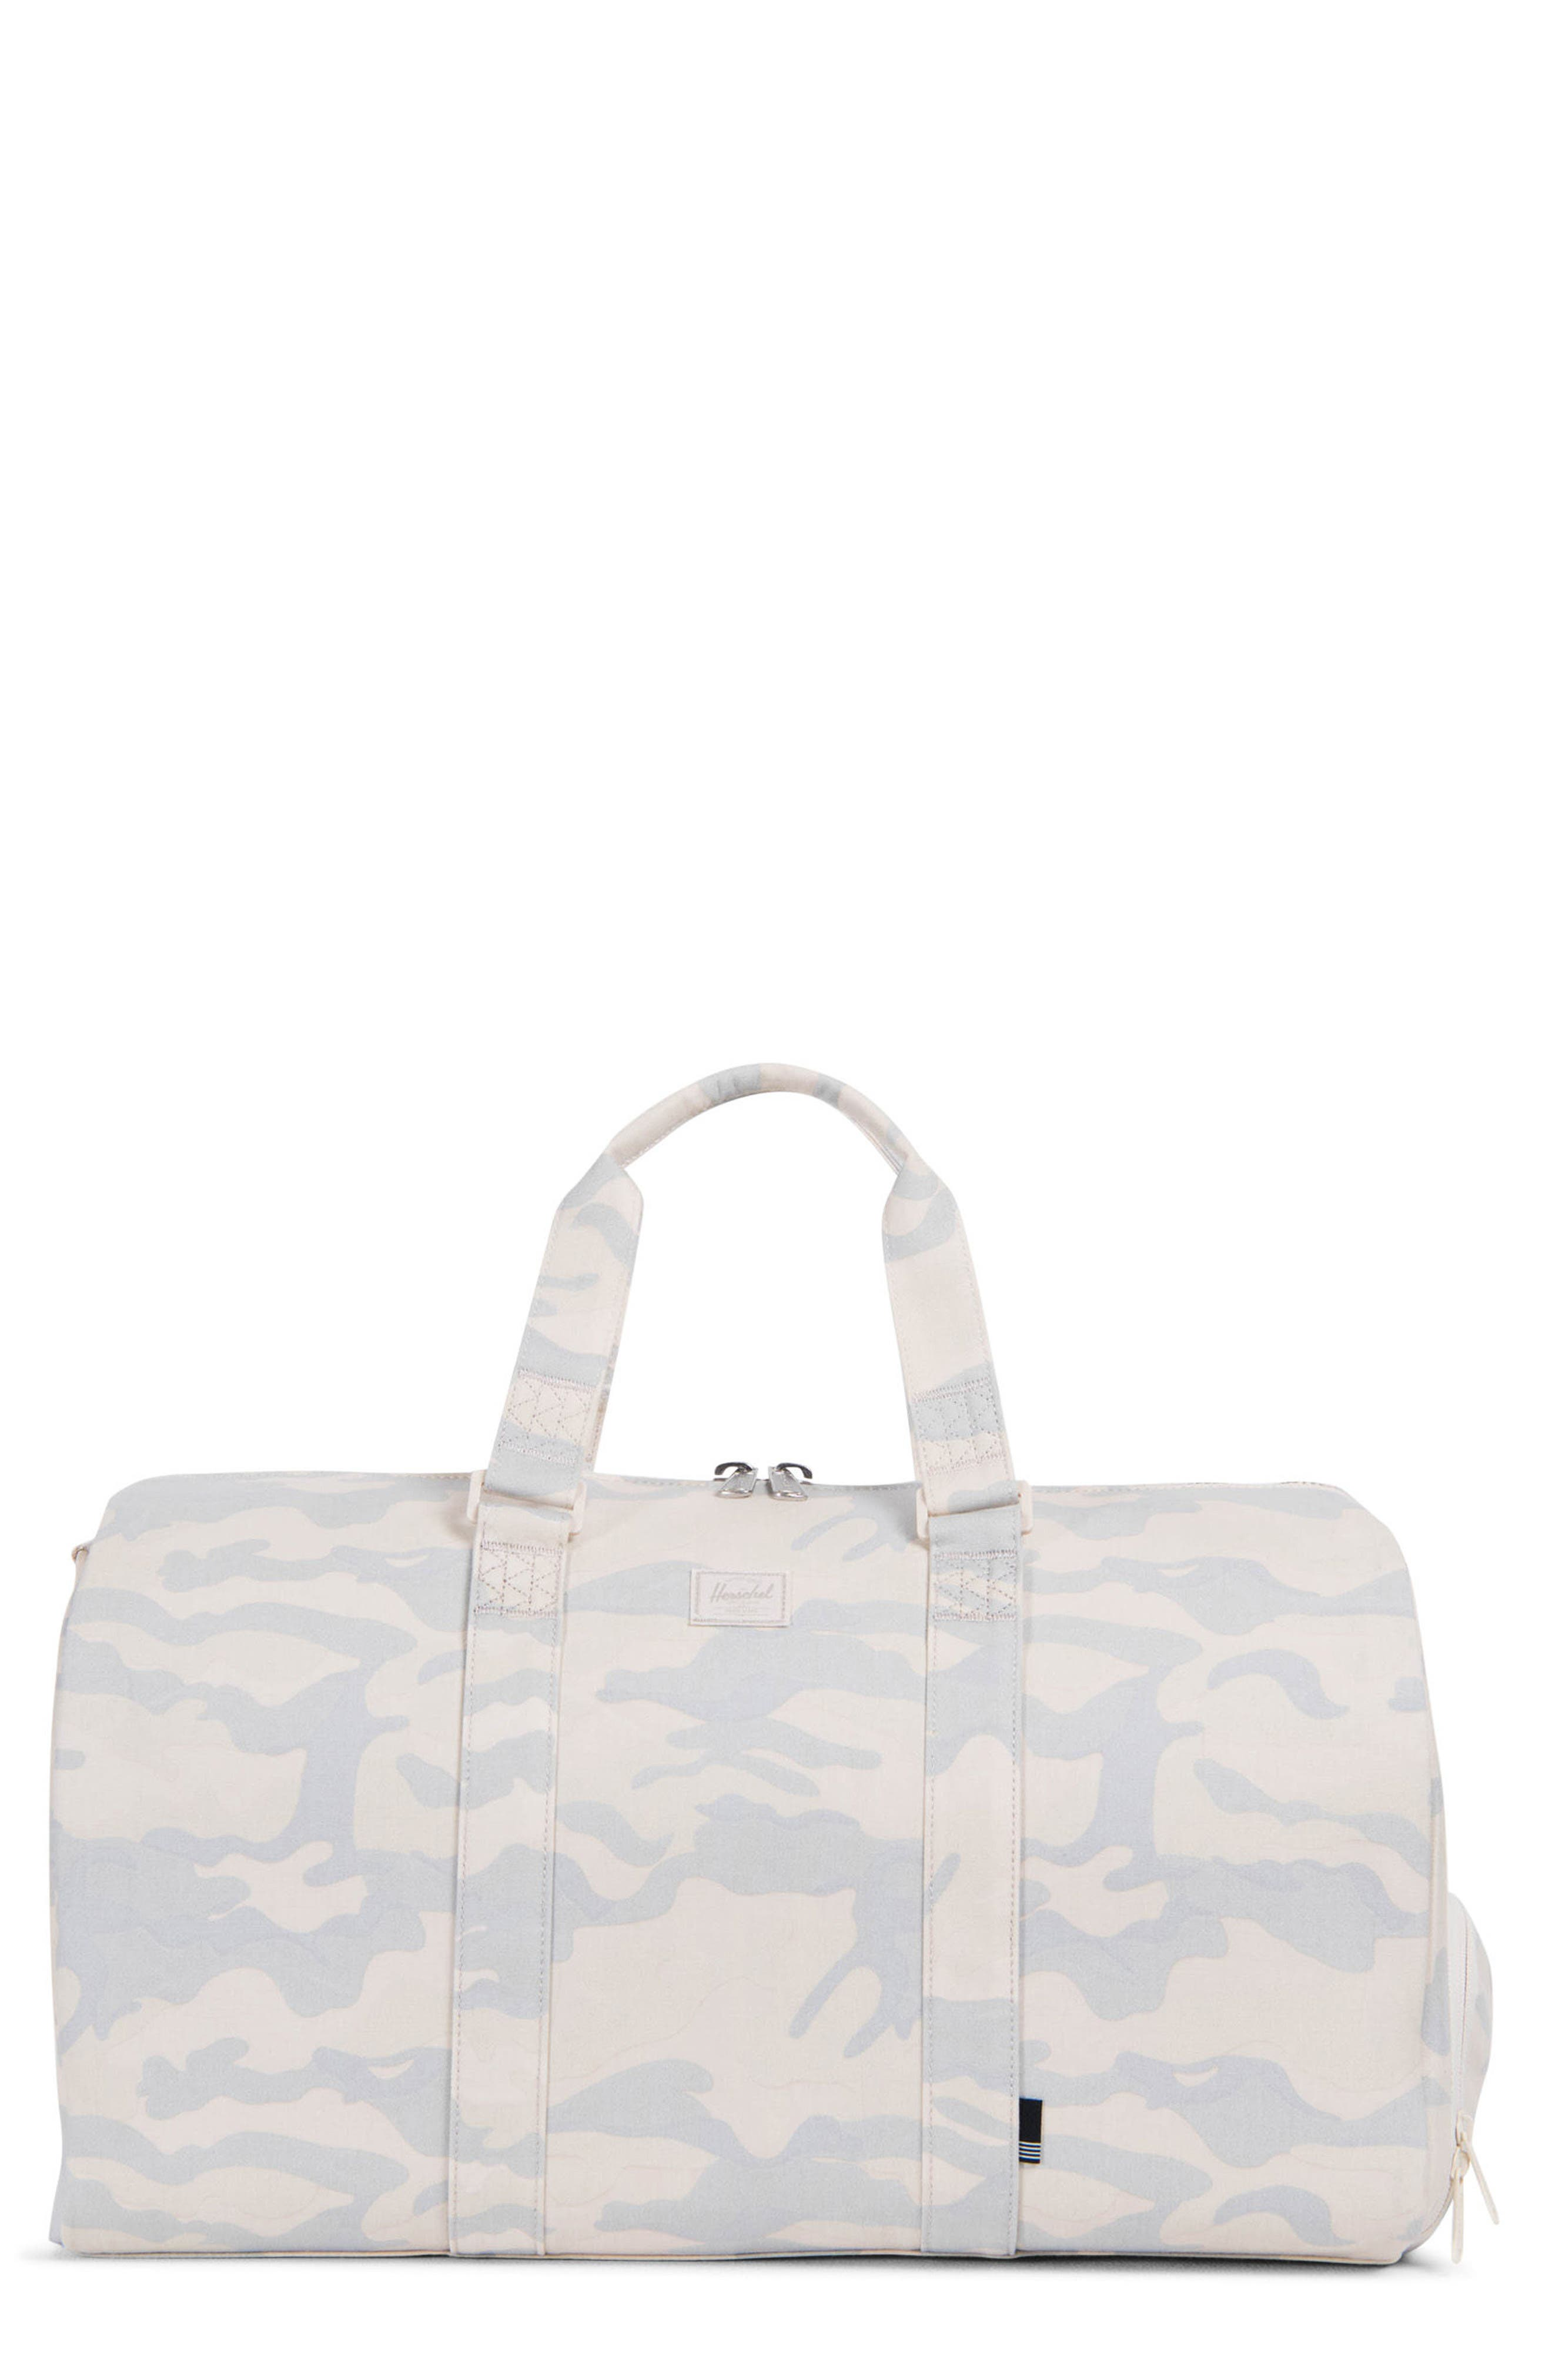 Novel Cotton Canvas Duffel Bag,                             Main thumbnail 1, color,                             250